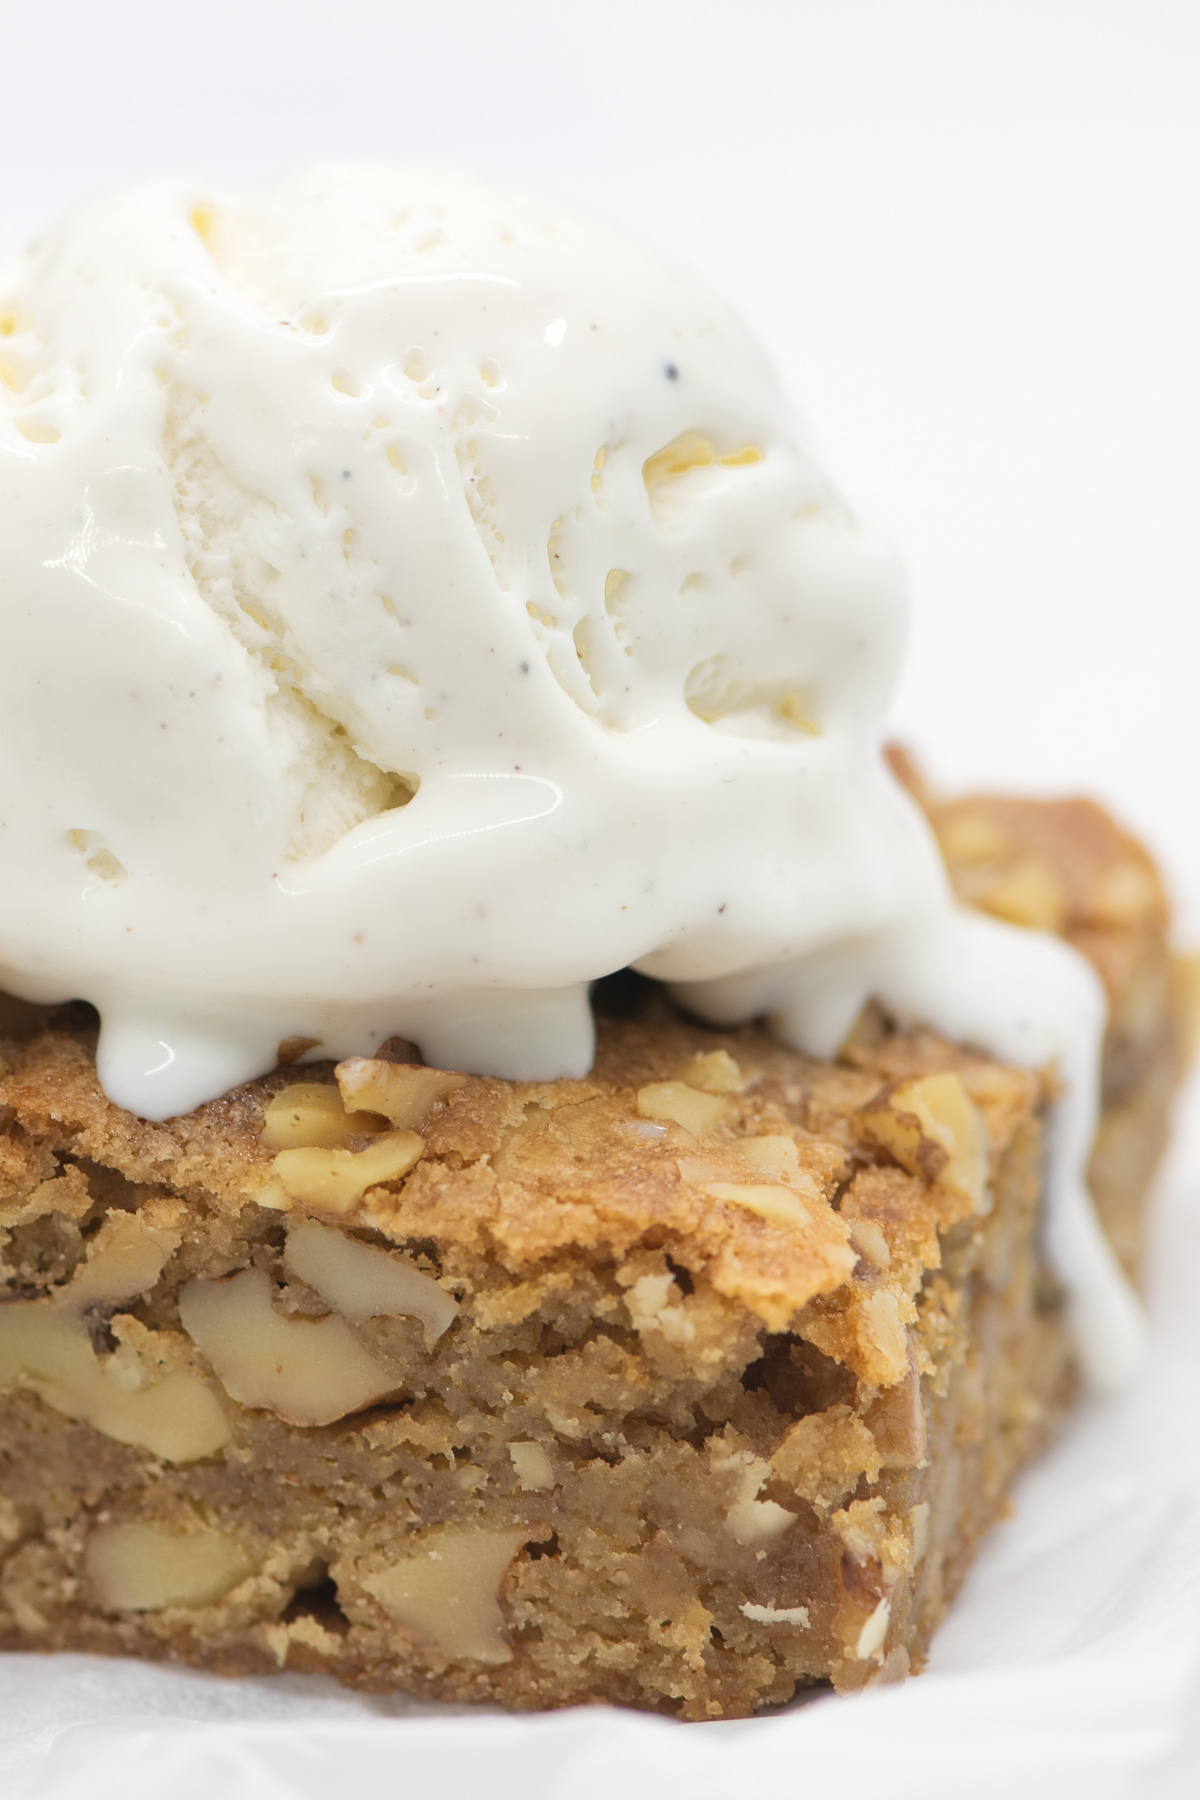 maple walnut blondie with a scoop of ice cream